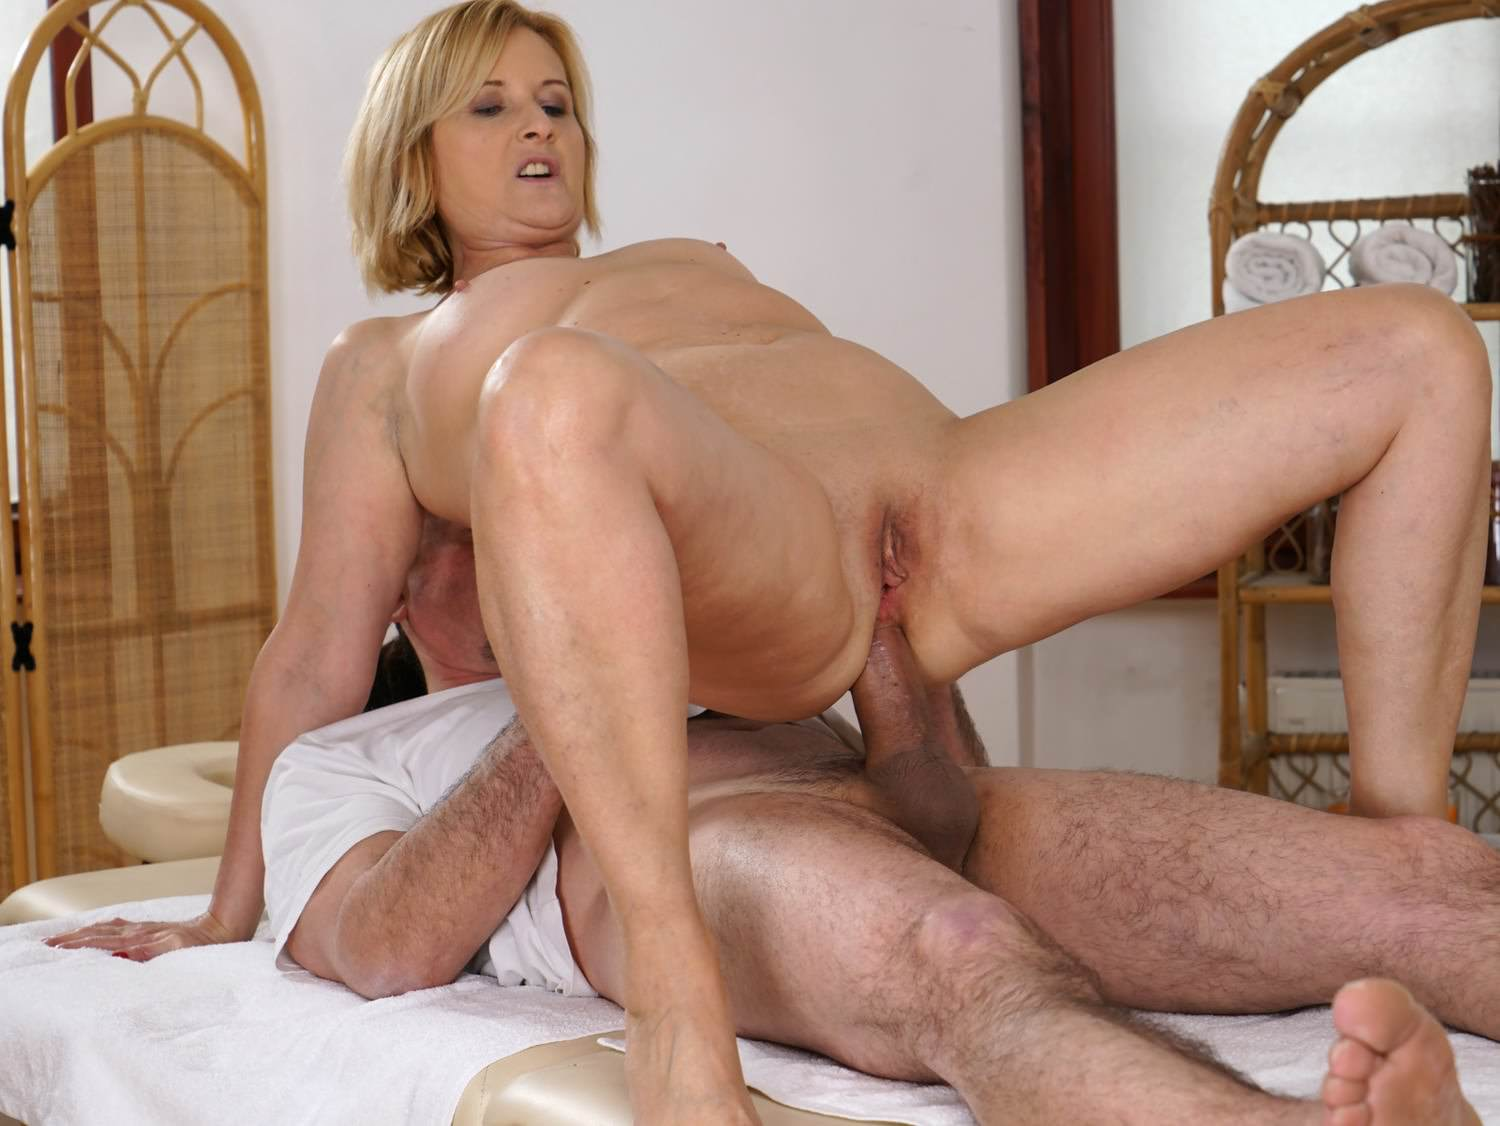 Older Woman Enjoys Massage And Anal Sex, Porn 0D Xhamster-1014